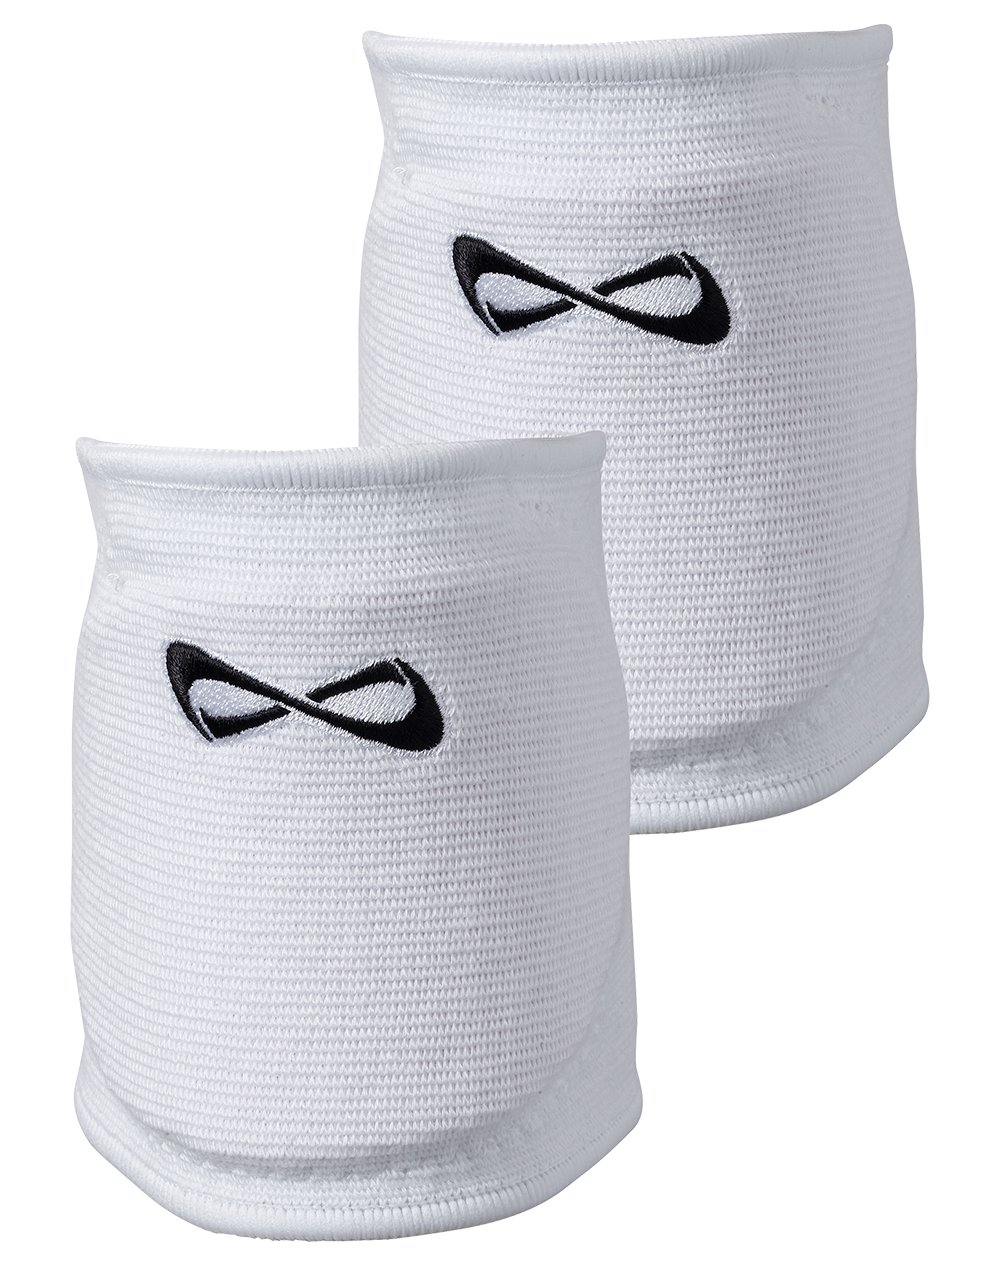 Nfinity Volleyball D3O Kneepads - White - Large